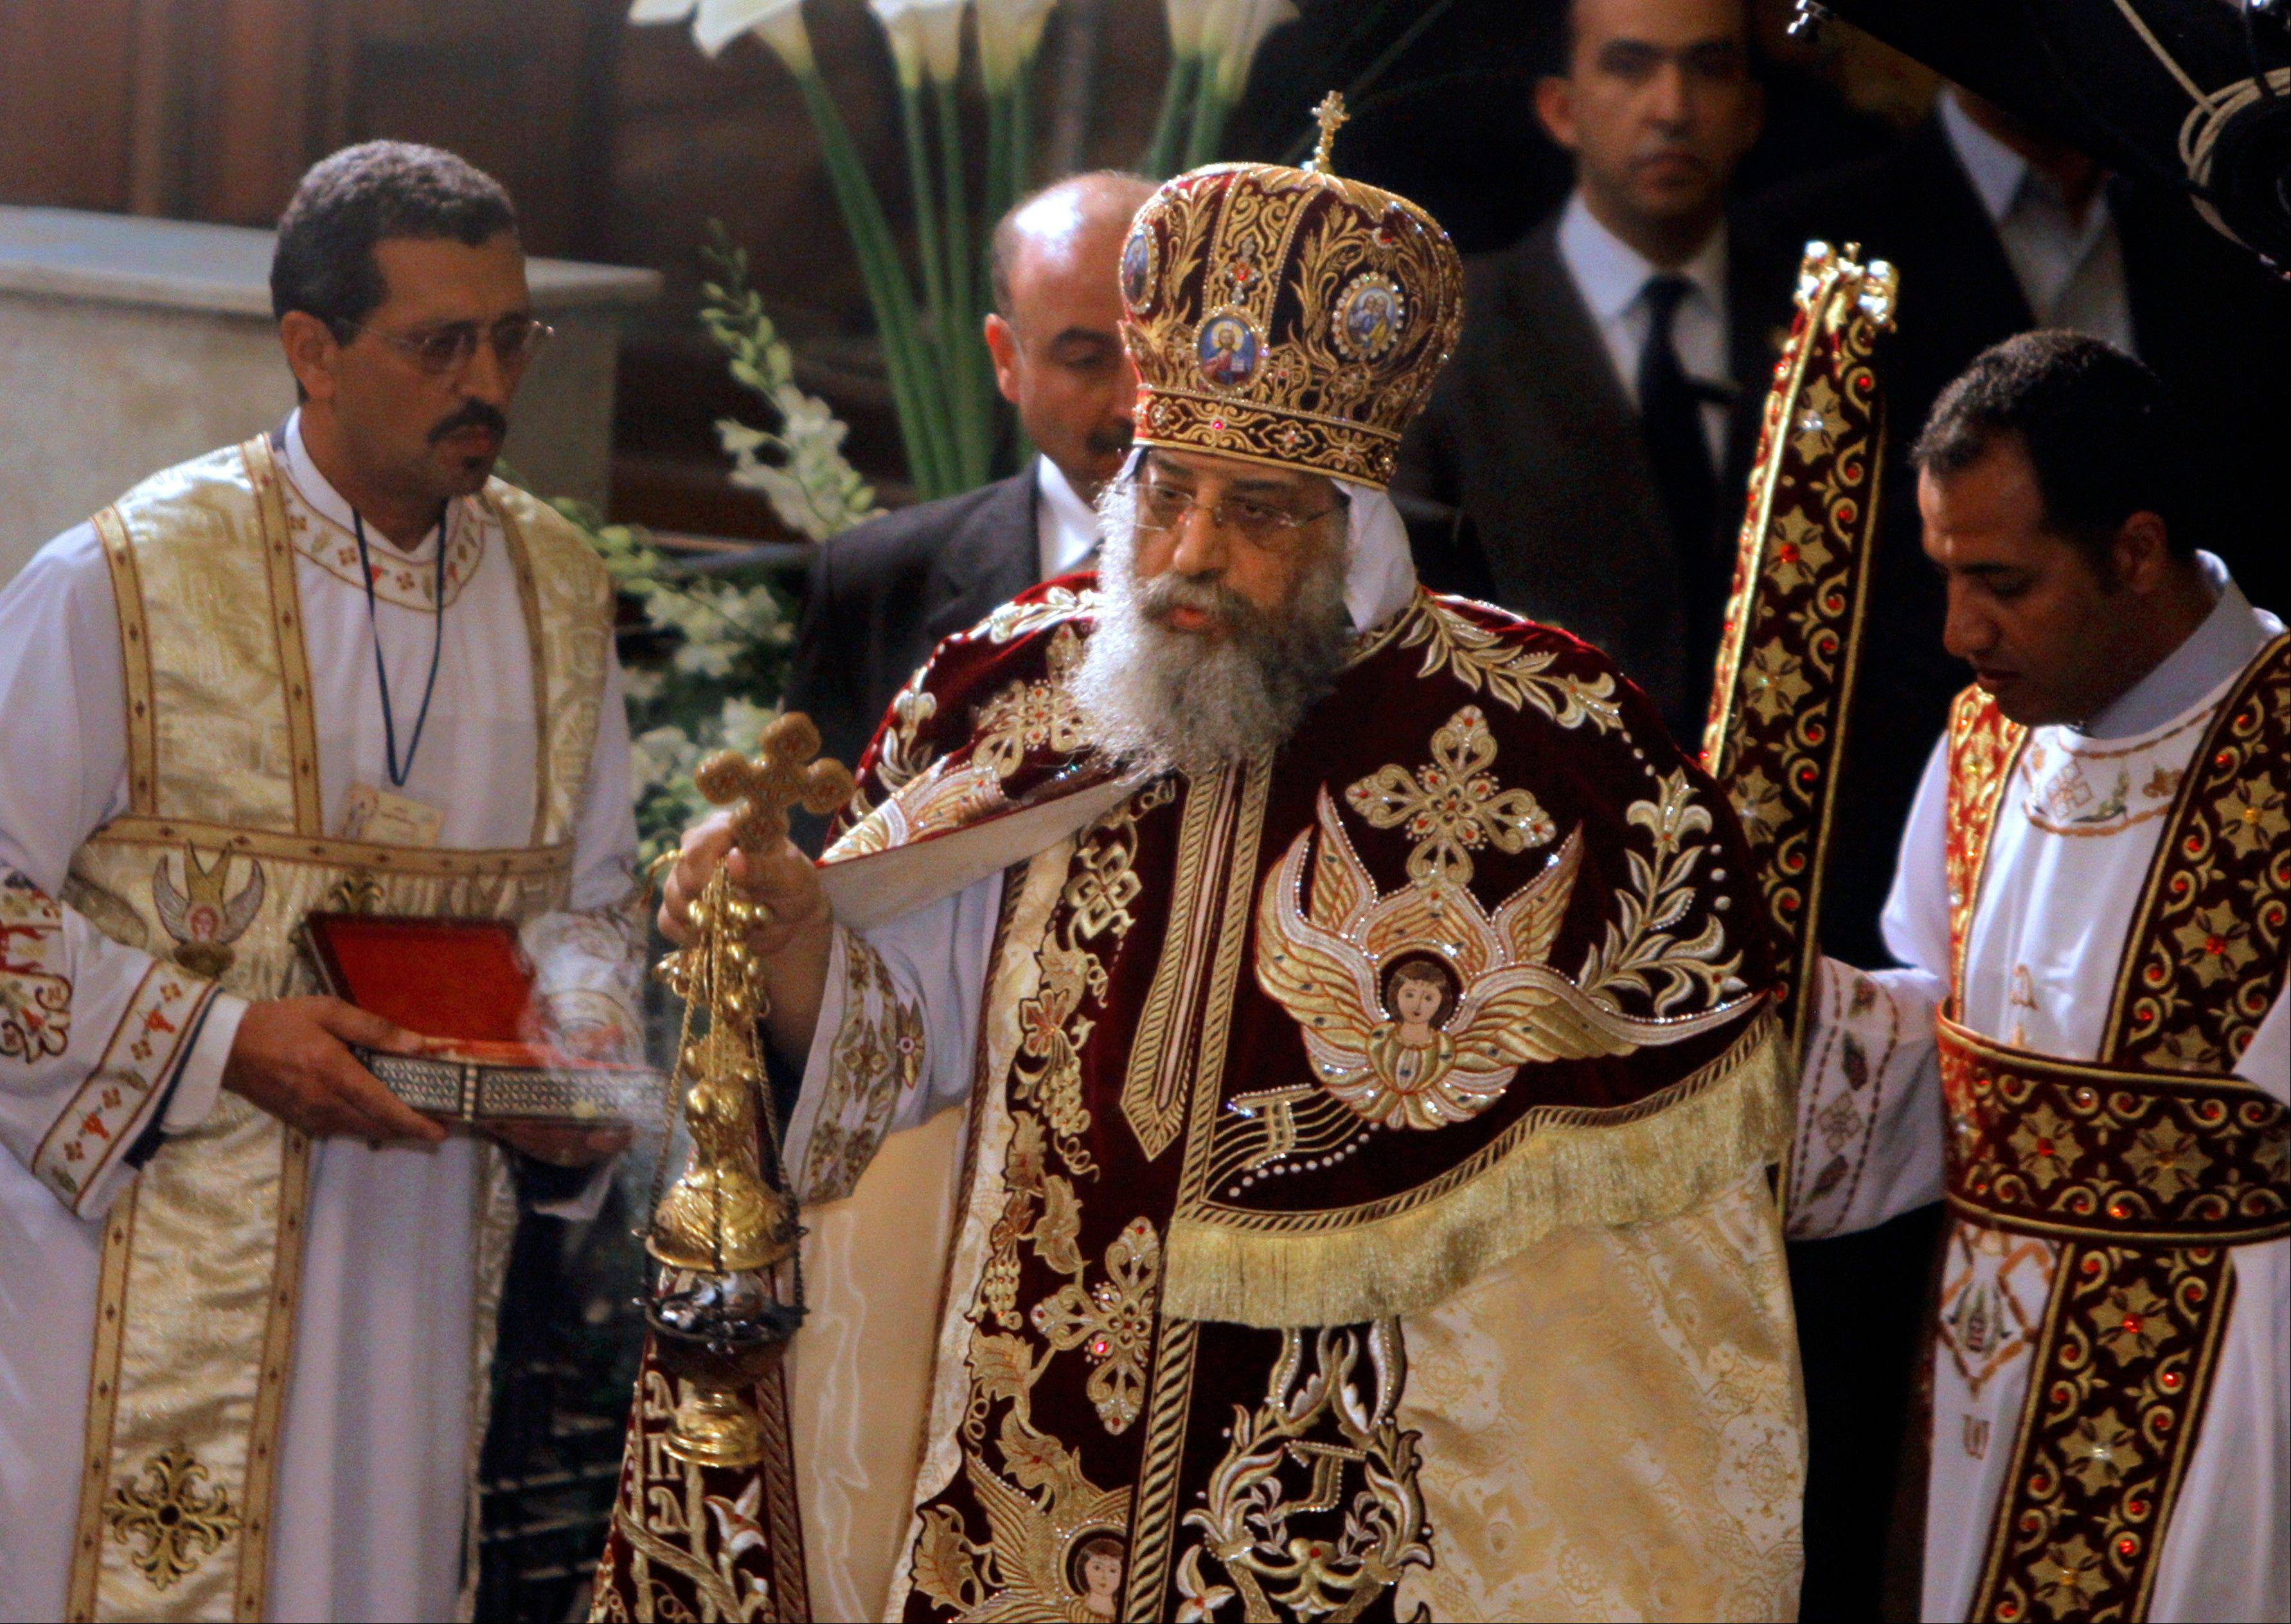 Pope Tawadros II, the 118th pope of the Coptic Church of Egypt, leads the Easter Mass Saturday at St. Mark's Cathedral in Cairo, Egypt.